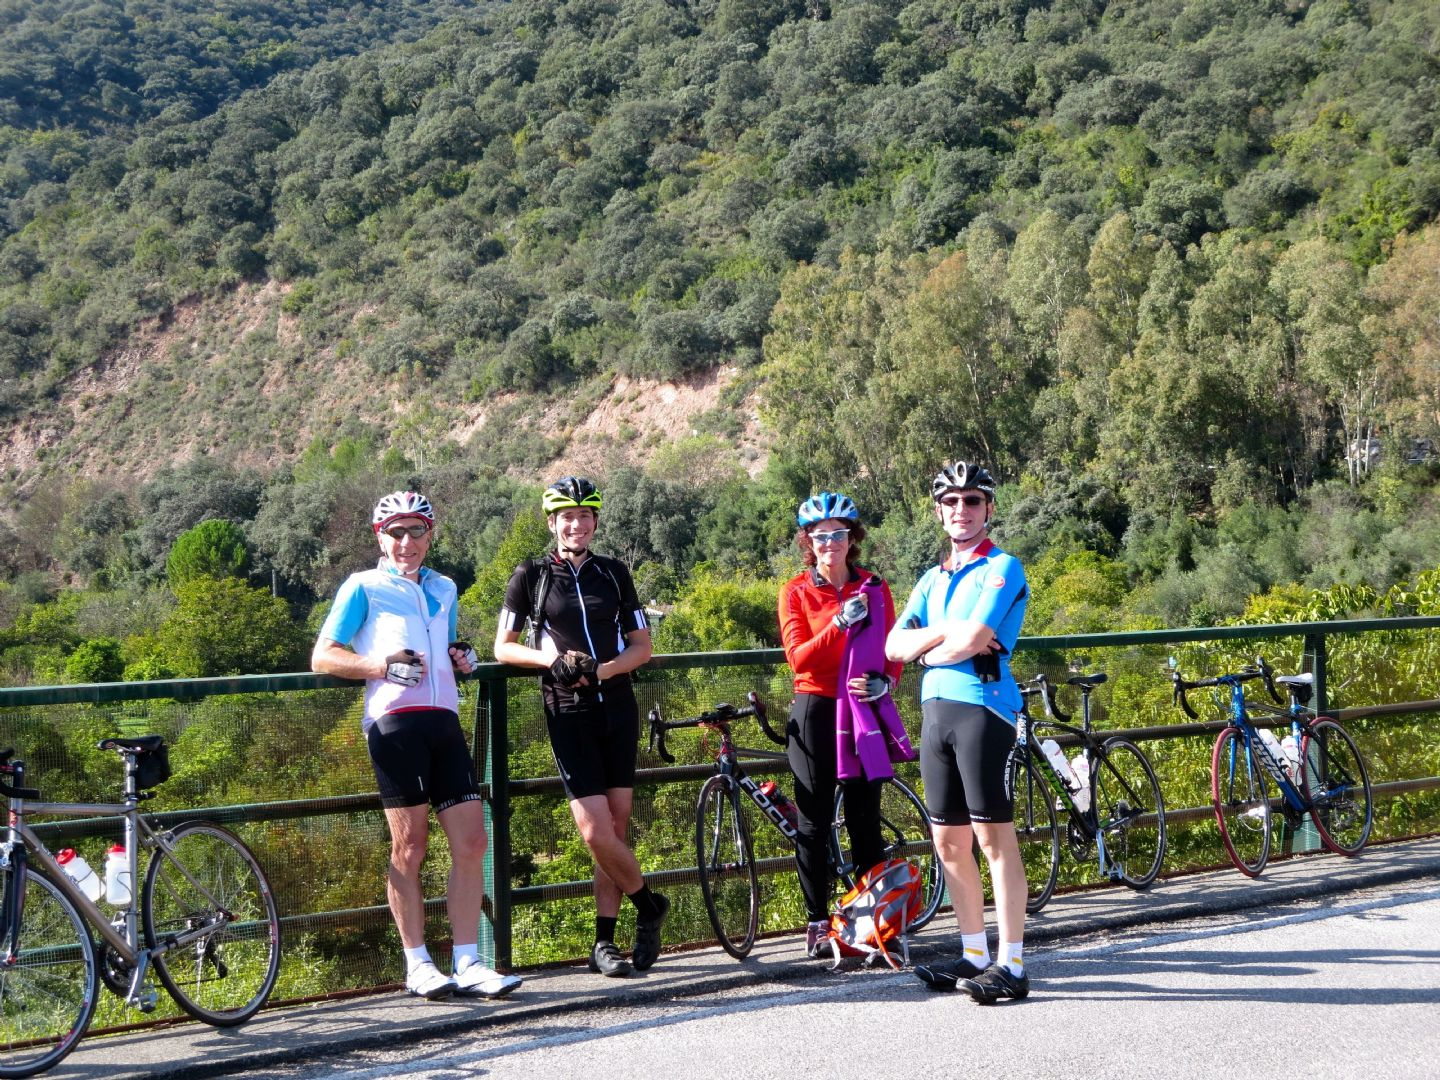 Spanishroadcycling3.jpg - Southern Spain - Roads of Ronda - Self-Guided Road Cycling Holiday - Road Cycling